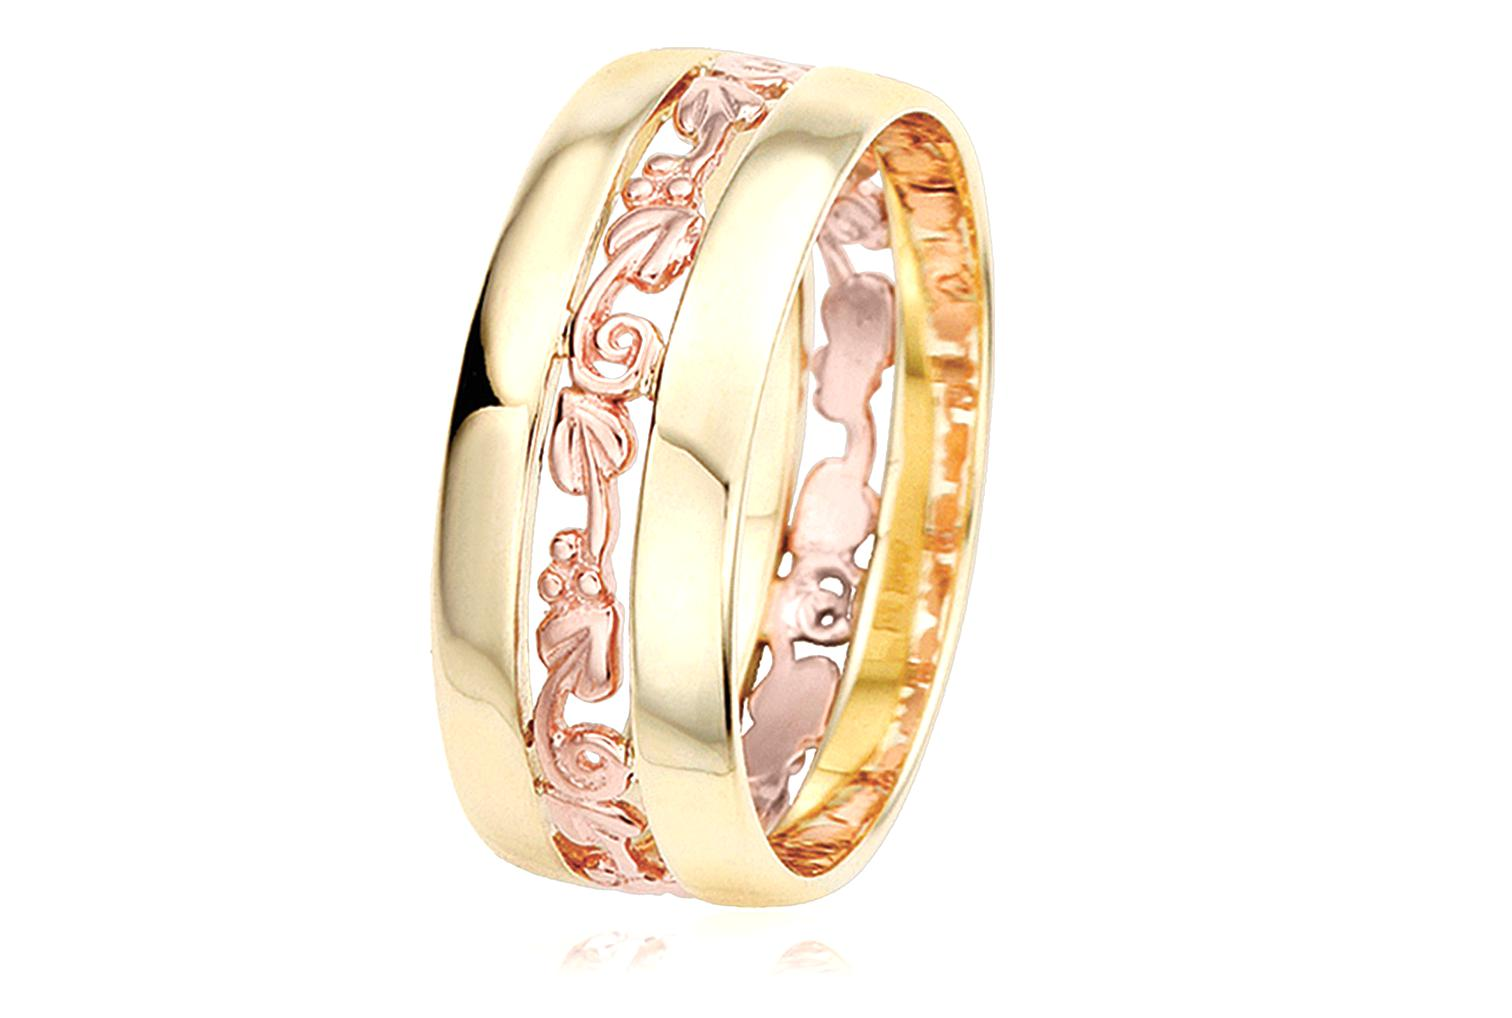 Clogau Gold For Sale In Uk 77 Second Hand Clogau Golds